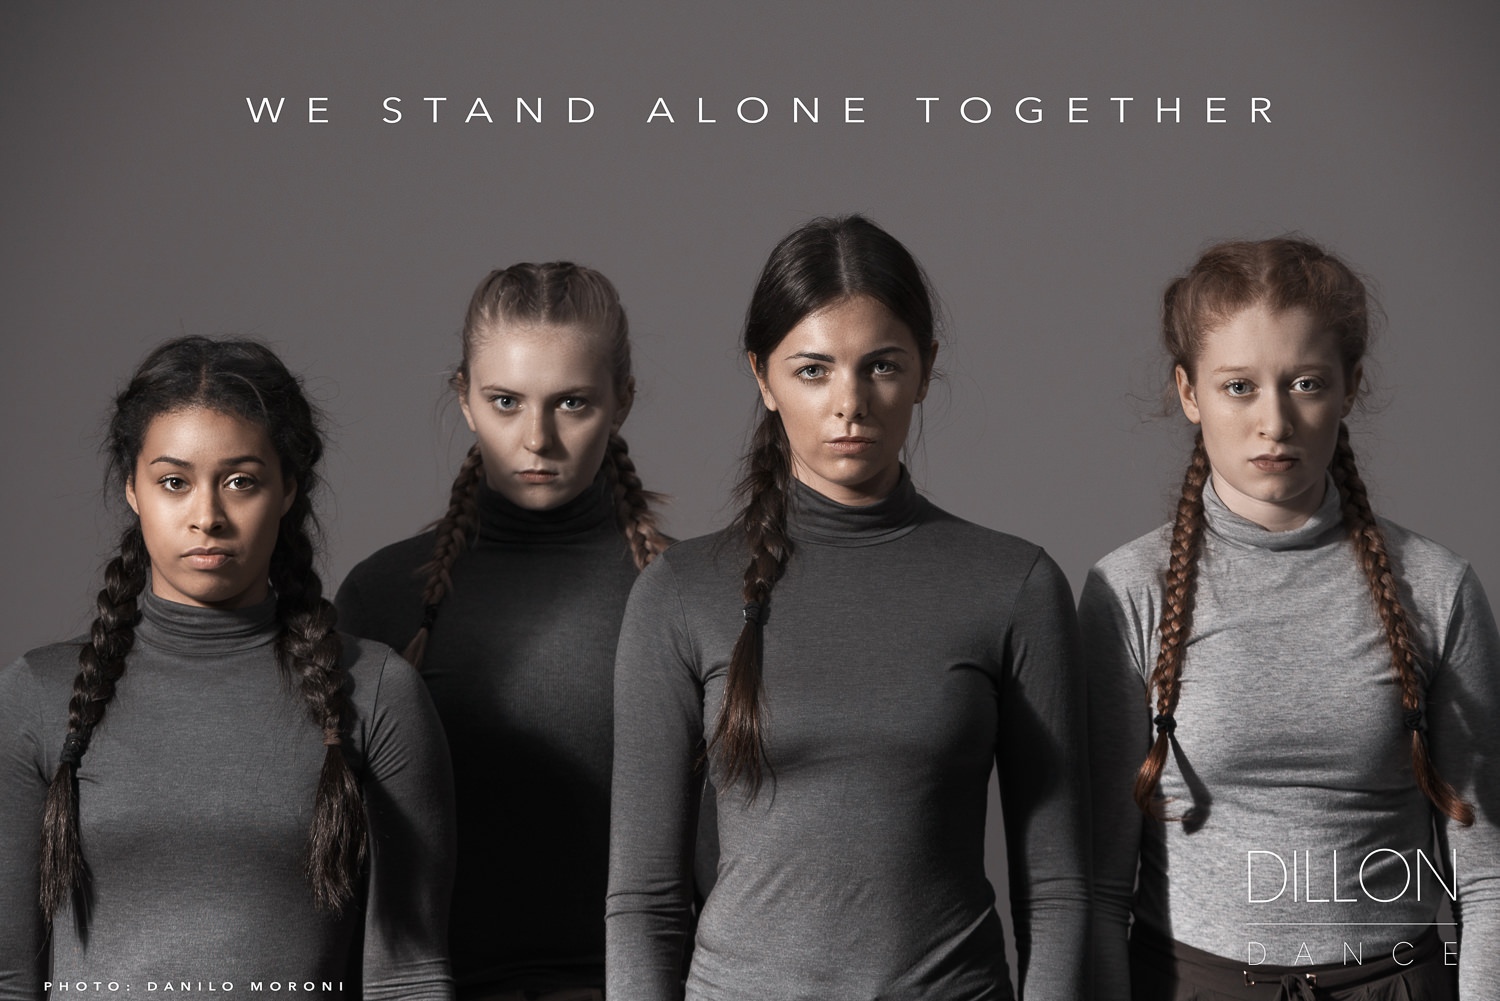 Dillon_Dance_We_Stand_Alone_Together_poster_Resolution_The_Place_London_photo_Danilo_Moroni.jpg